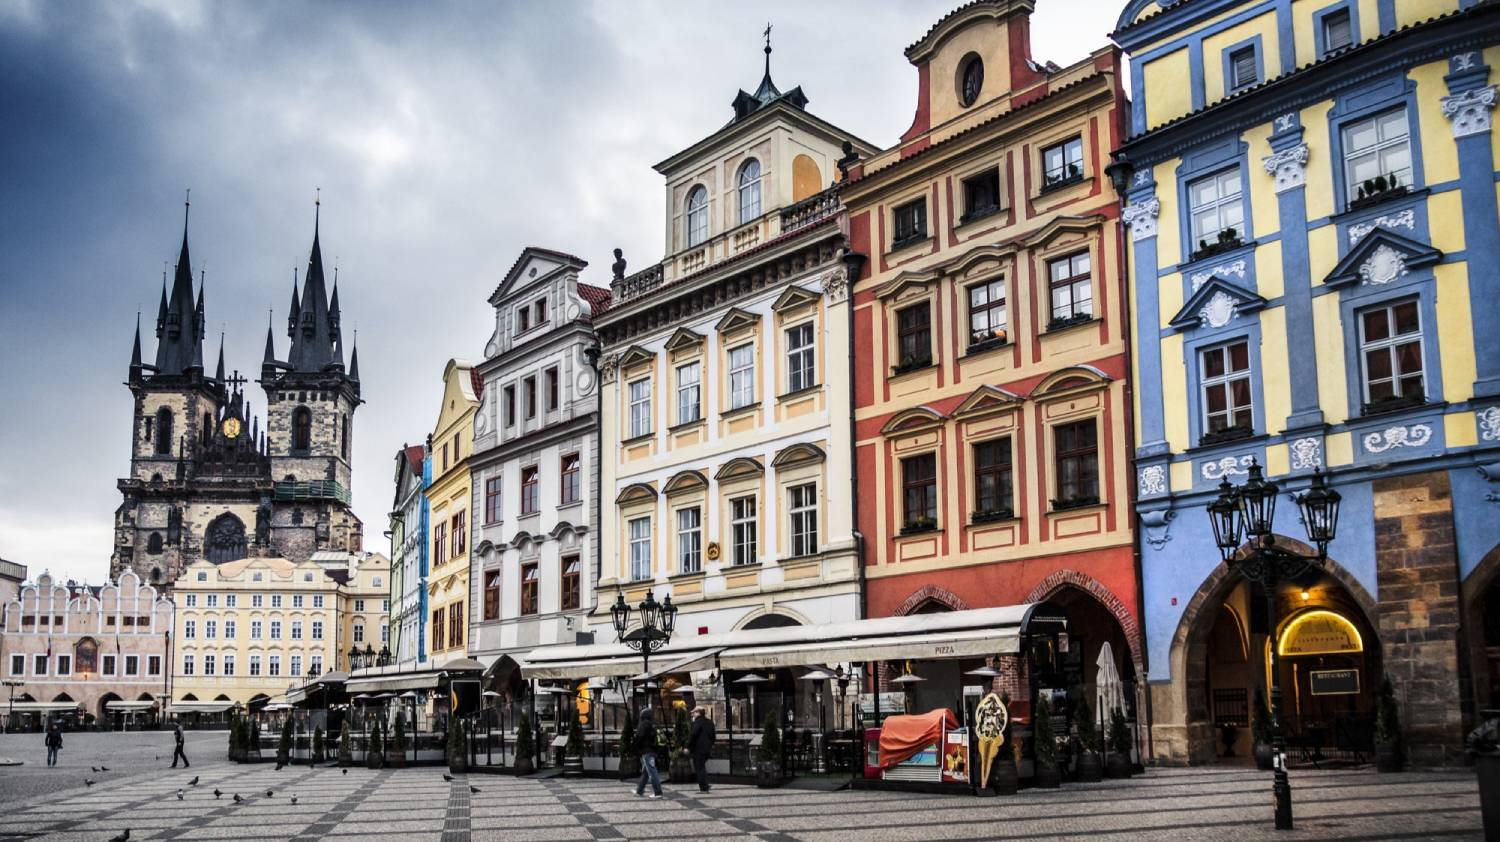 Prague Old Town (Stare Mesto) - Things To Do In Prague